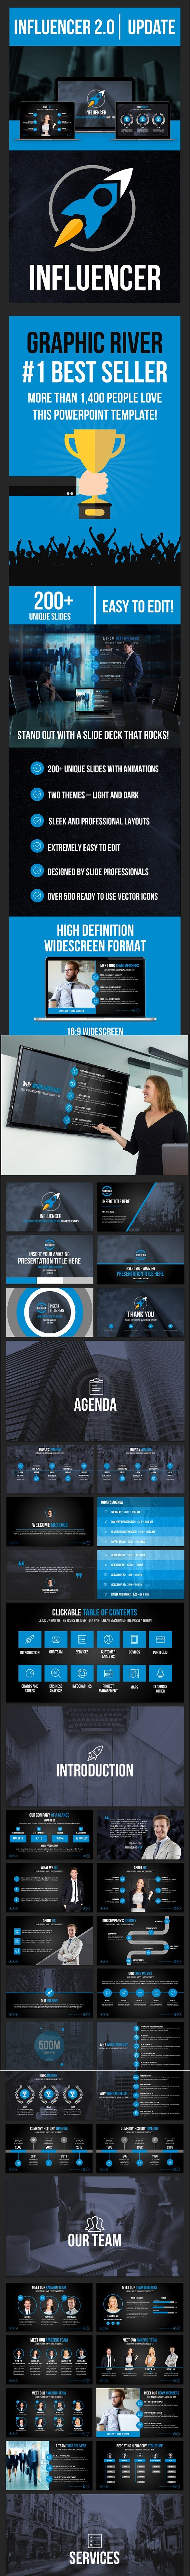 Influencer PowerPoint Presentation Template - PowerPoint Templates Presentation Templates